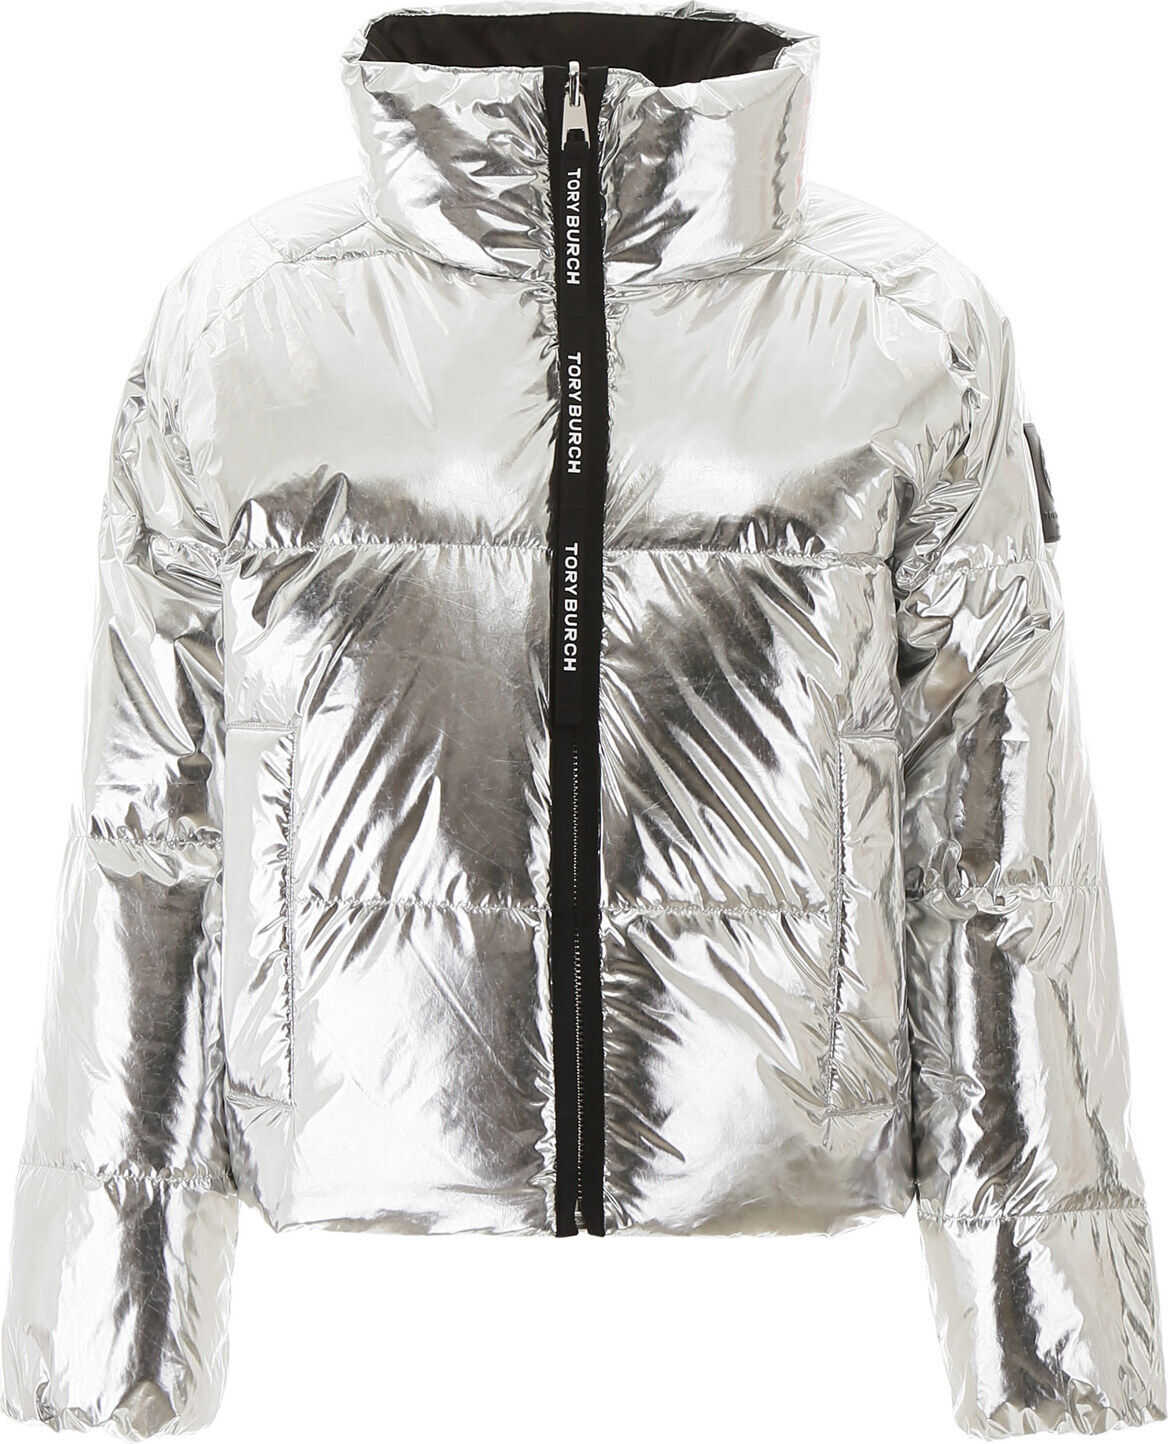 Tory Burch Reversible Puffer Jacket With Logo SILVER PERFECT BLACK